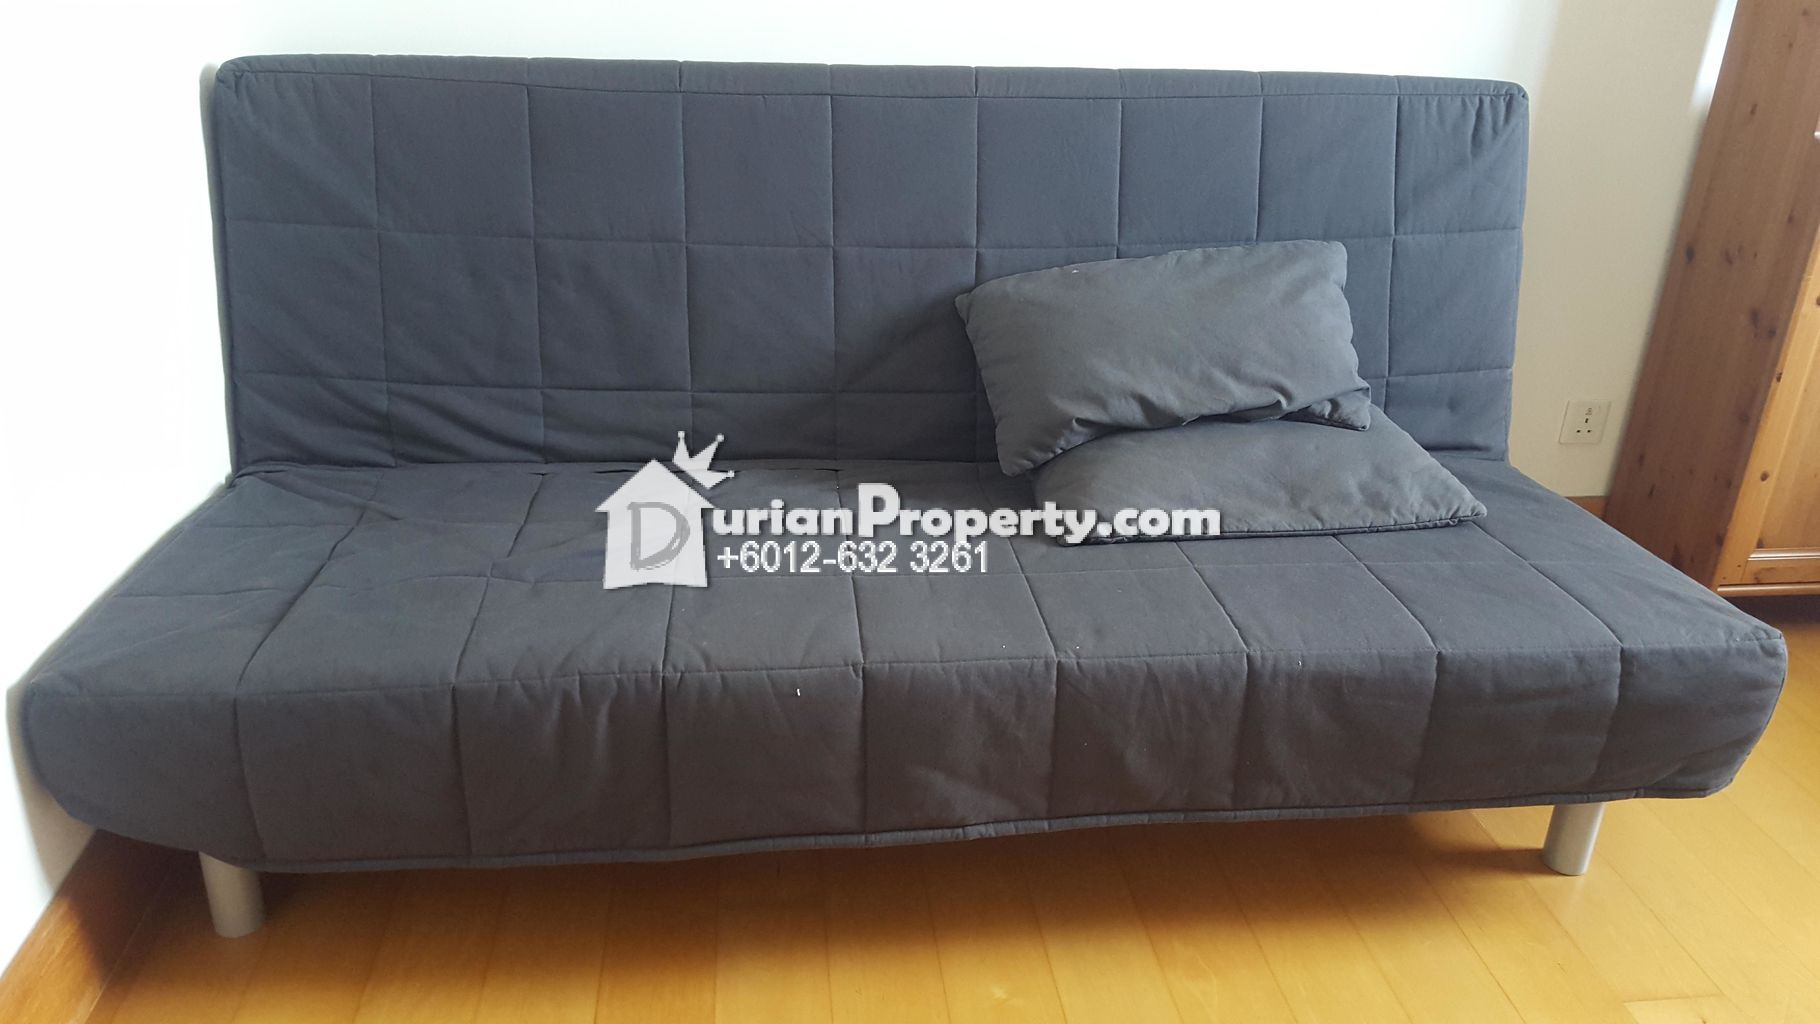 IKEA sofa bed For Sale